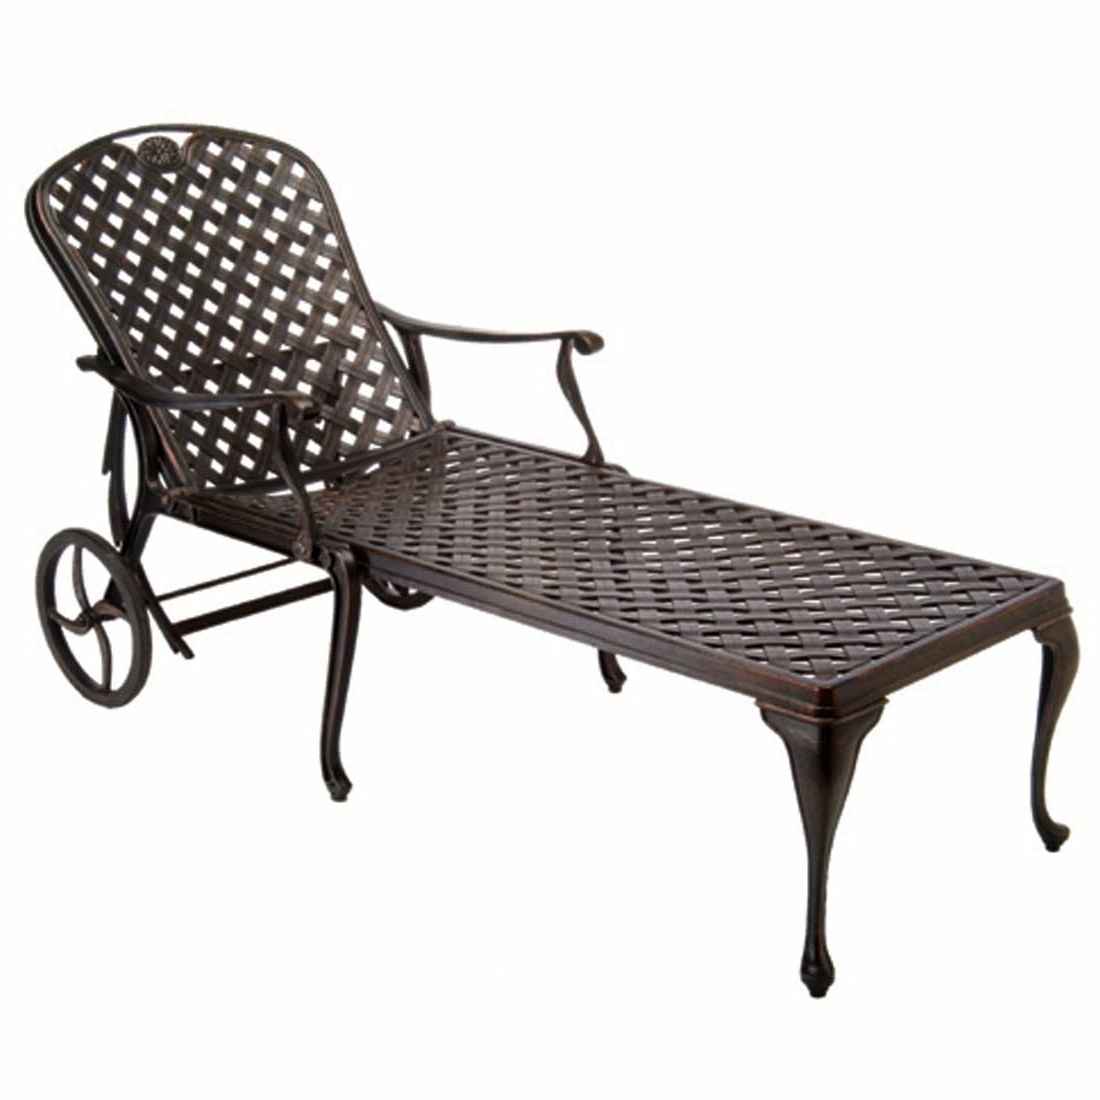 Recent Cast Aluminum Chaise Lounges With Wheels With Regard To Provance Metal Chaise Lounge Chairs (View 14 of 15)